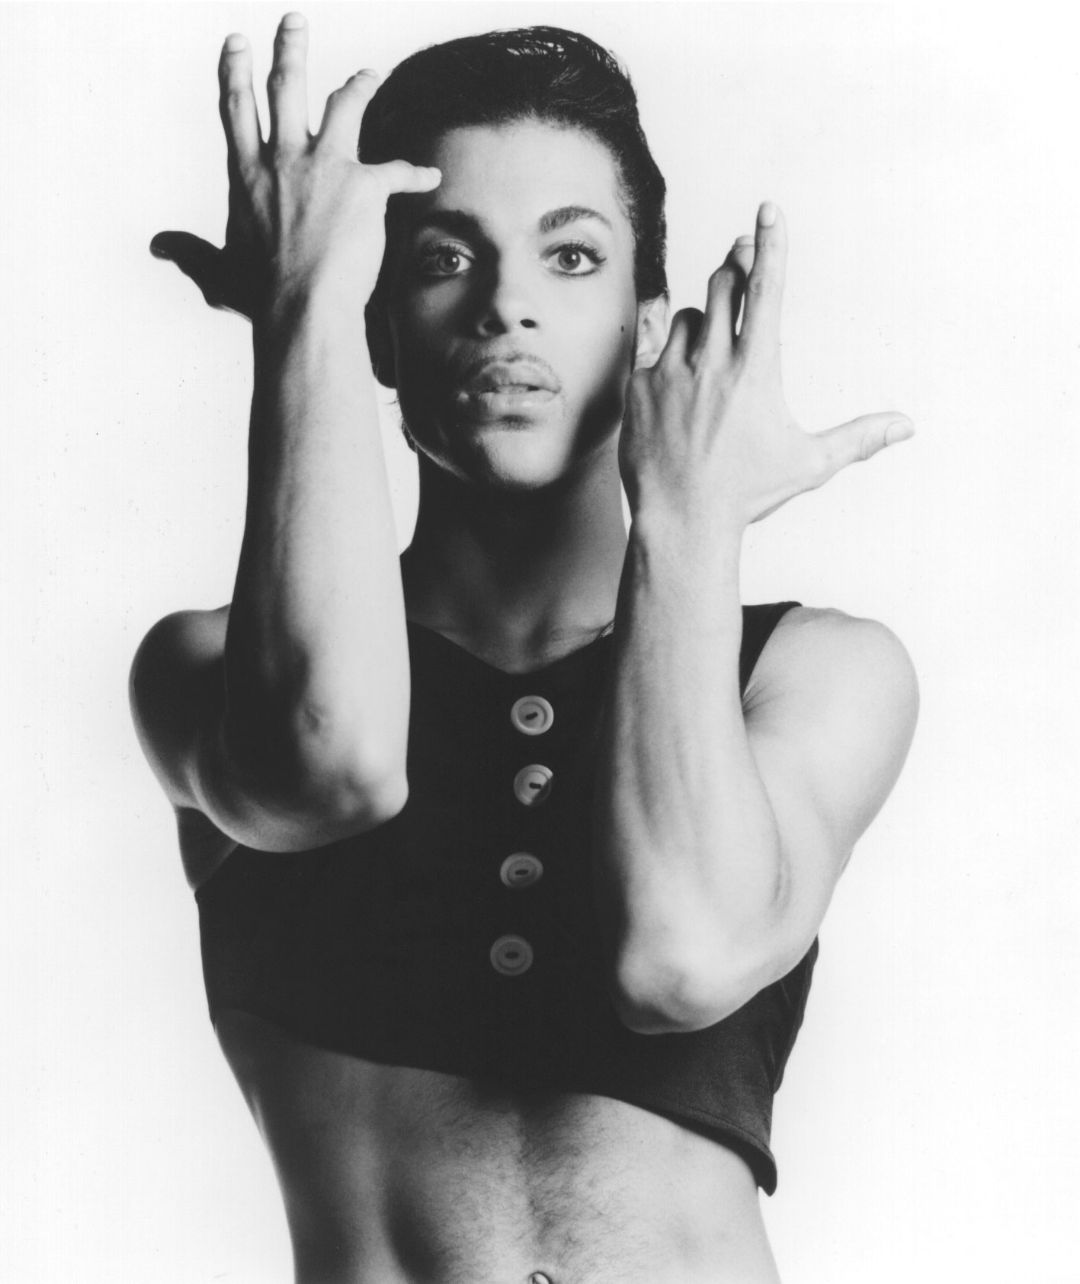 Happy birthday, Prince. Born on this day in 1958 in Minneapolis, MN.